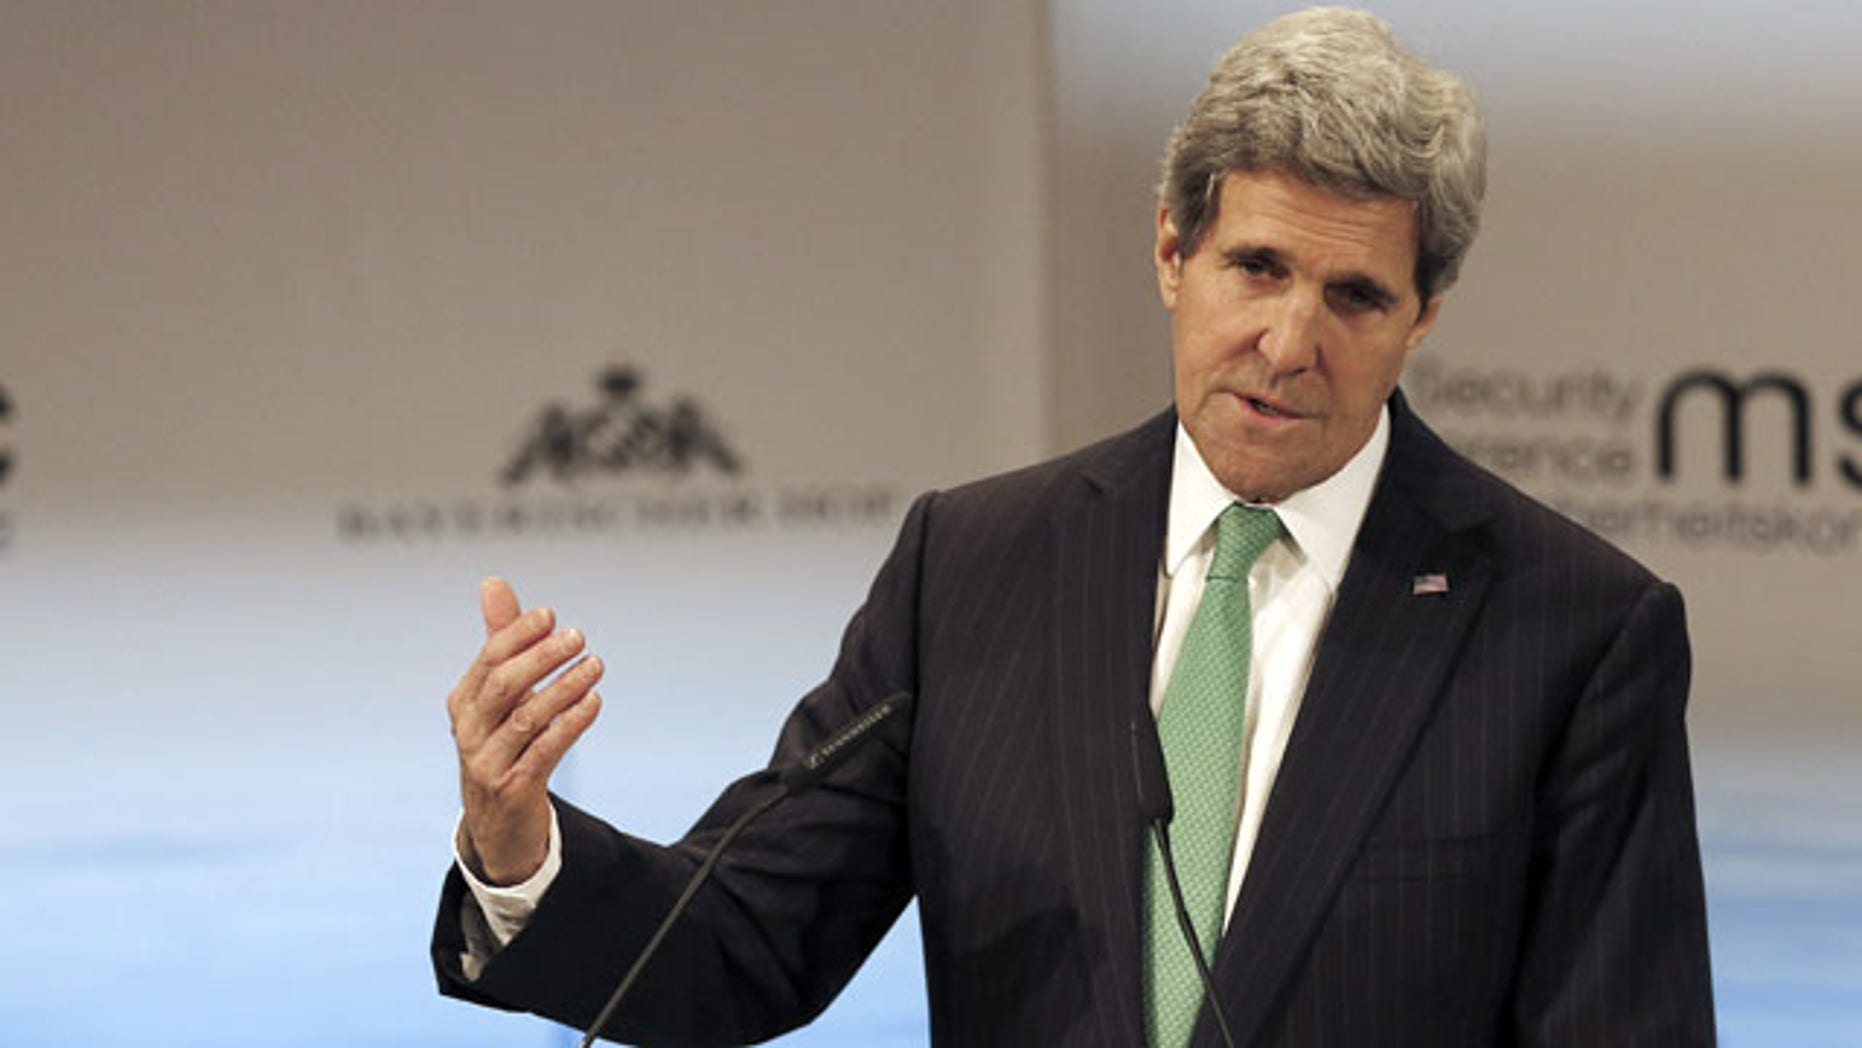 February 1, 2014: US Secretary of State John Kerry addresses the participants during the 50th Security Conference in Munich, Germany. (AP Photo/Frank Augstein)